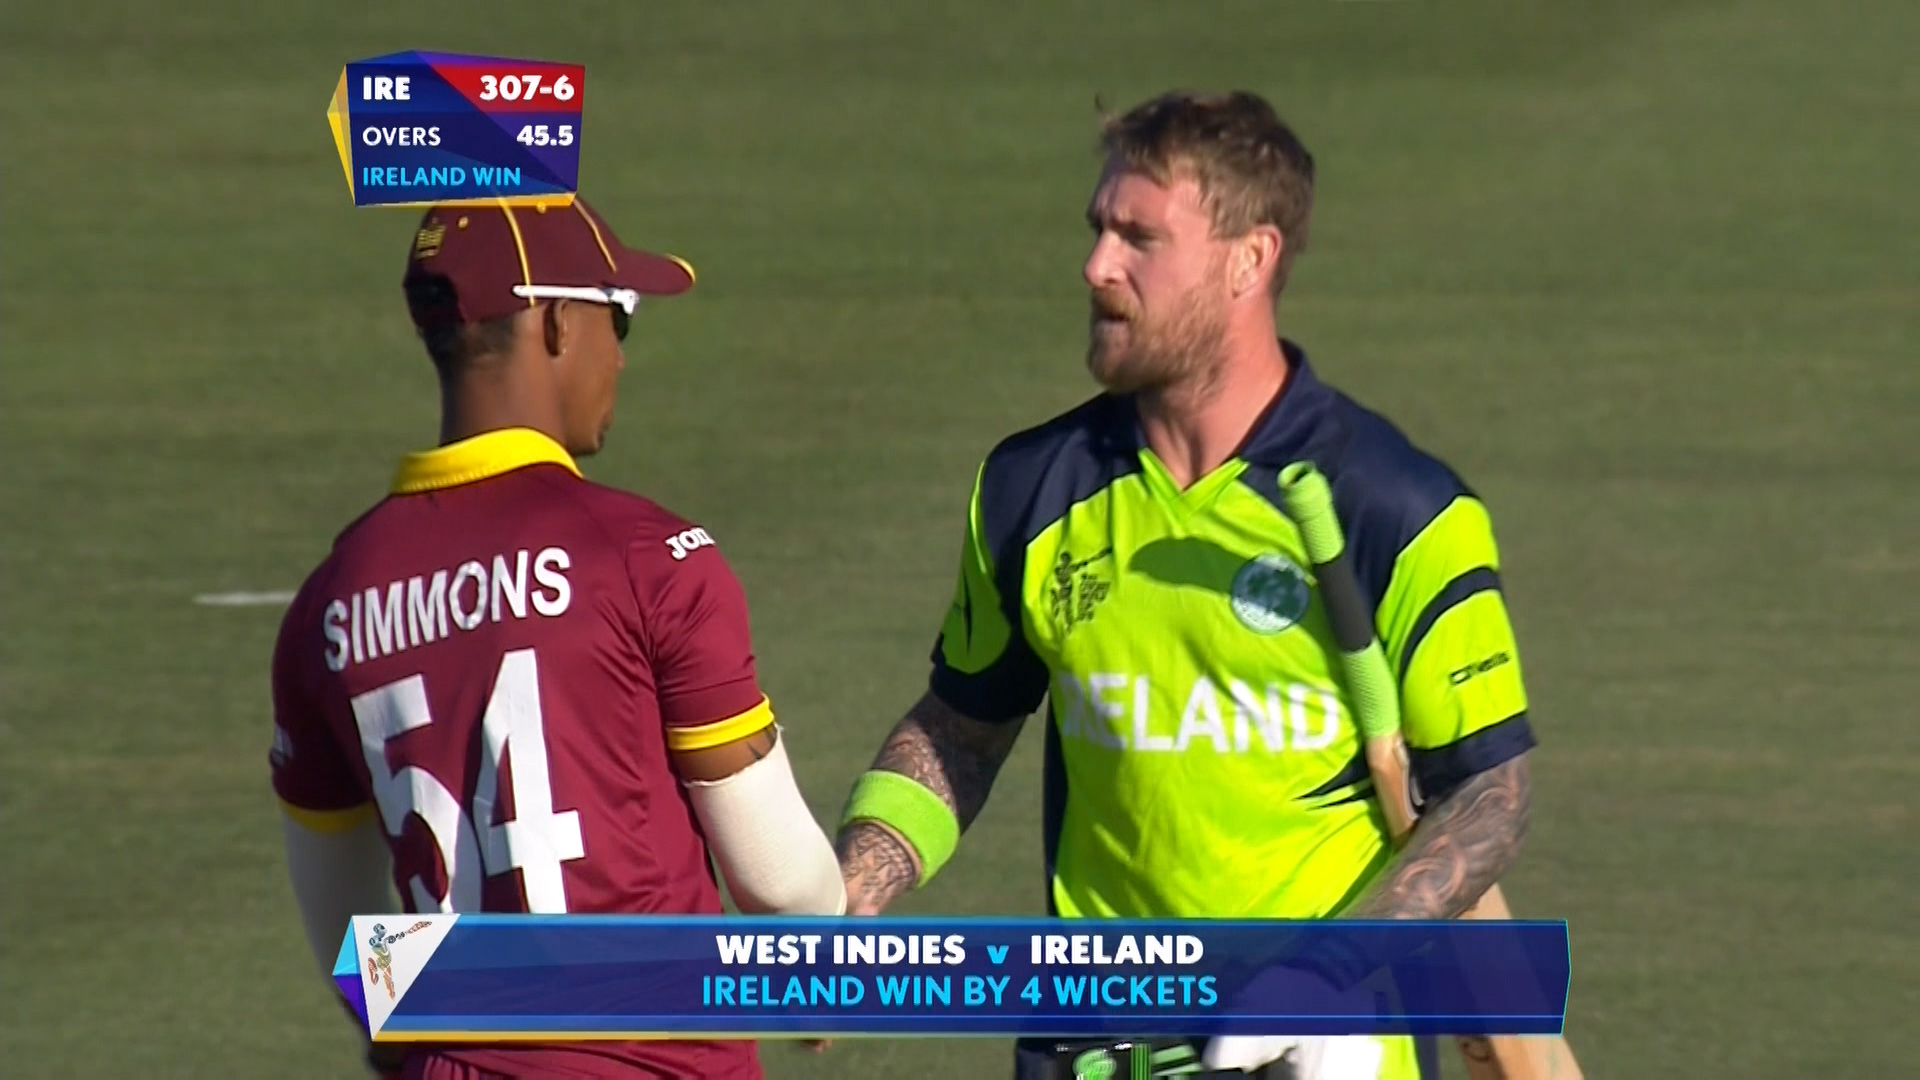 Match highlights – IRE vs WI